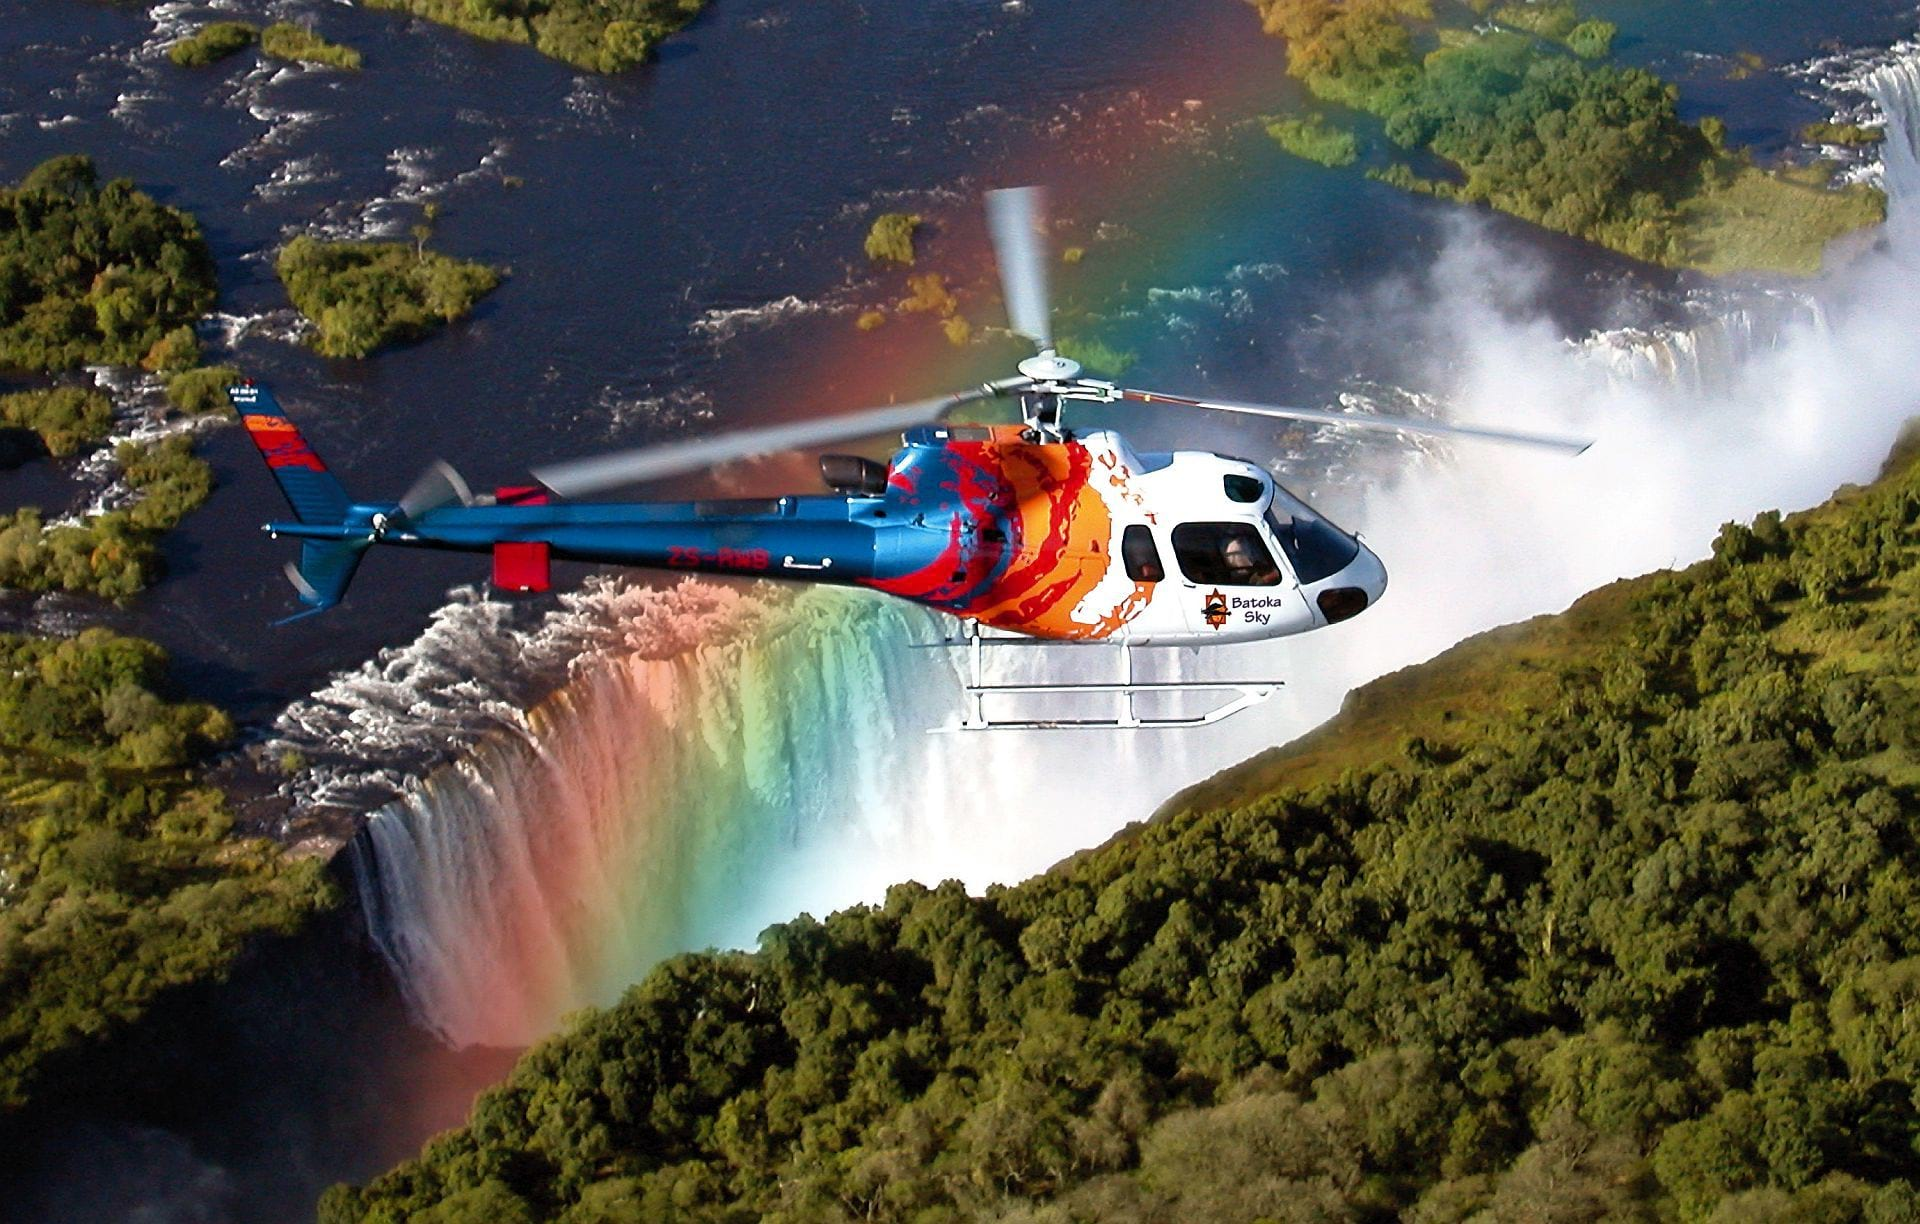 Helicopter Flight over the Falls